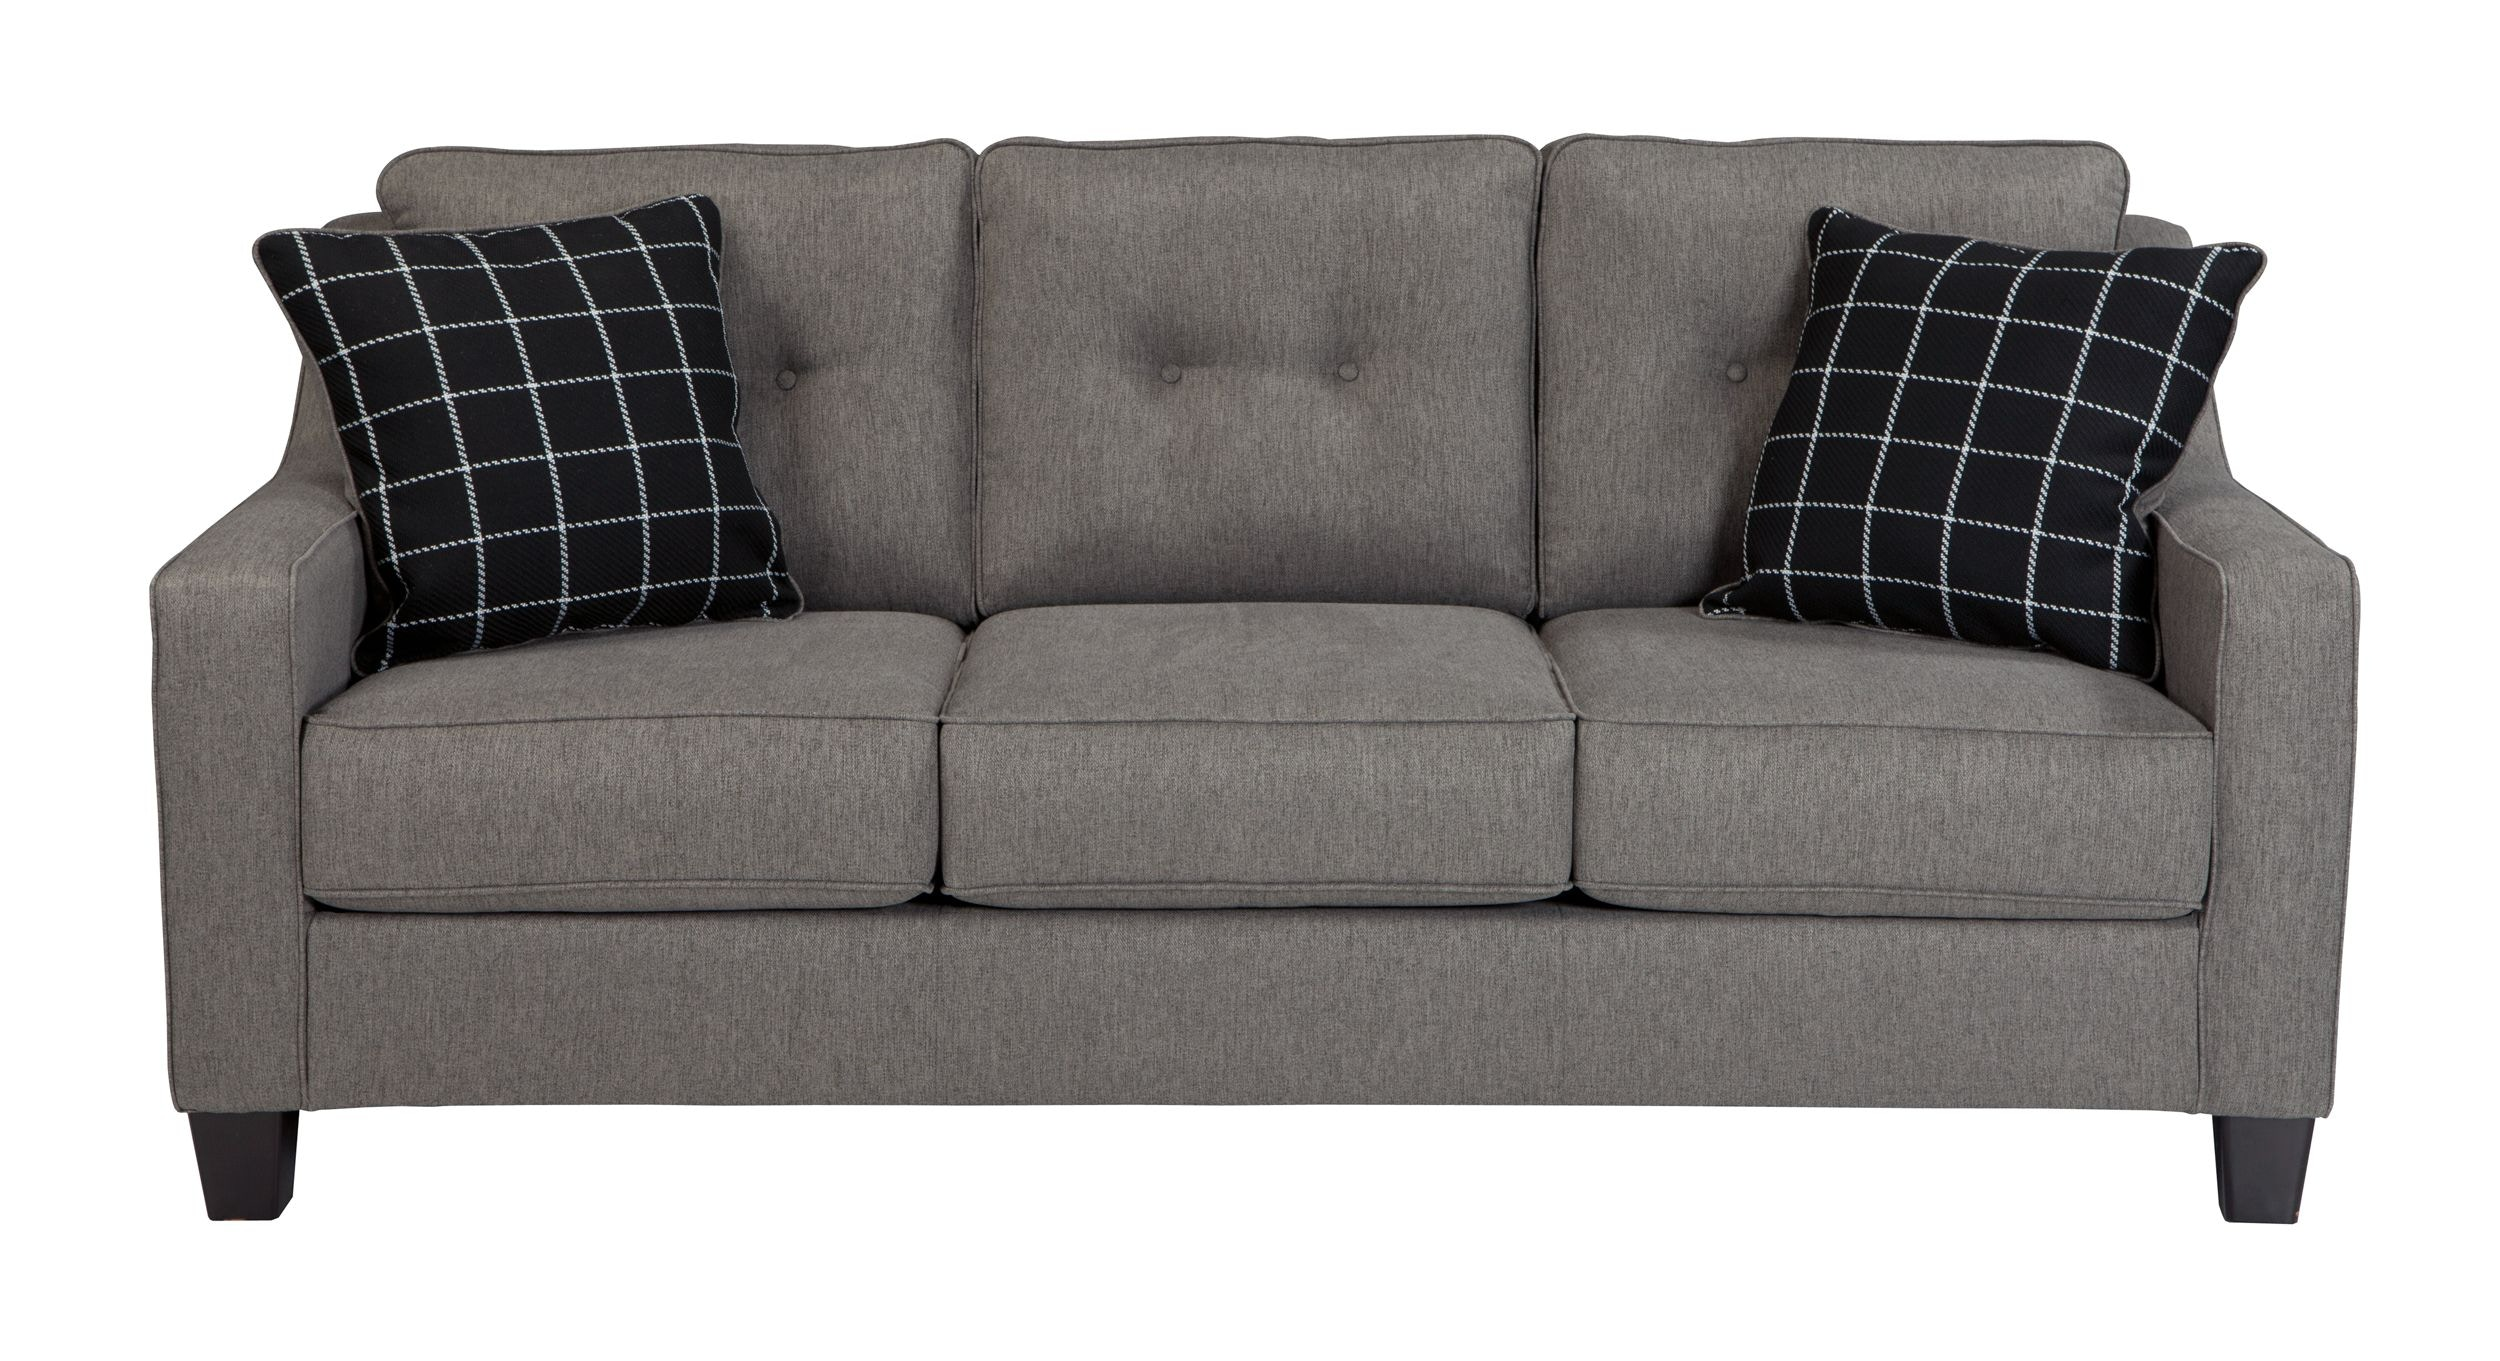 Signature Design by Ashley Living Room Sofa